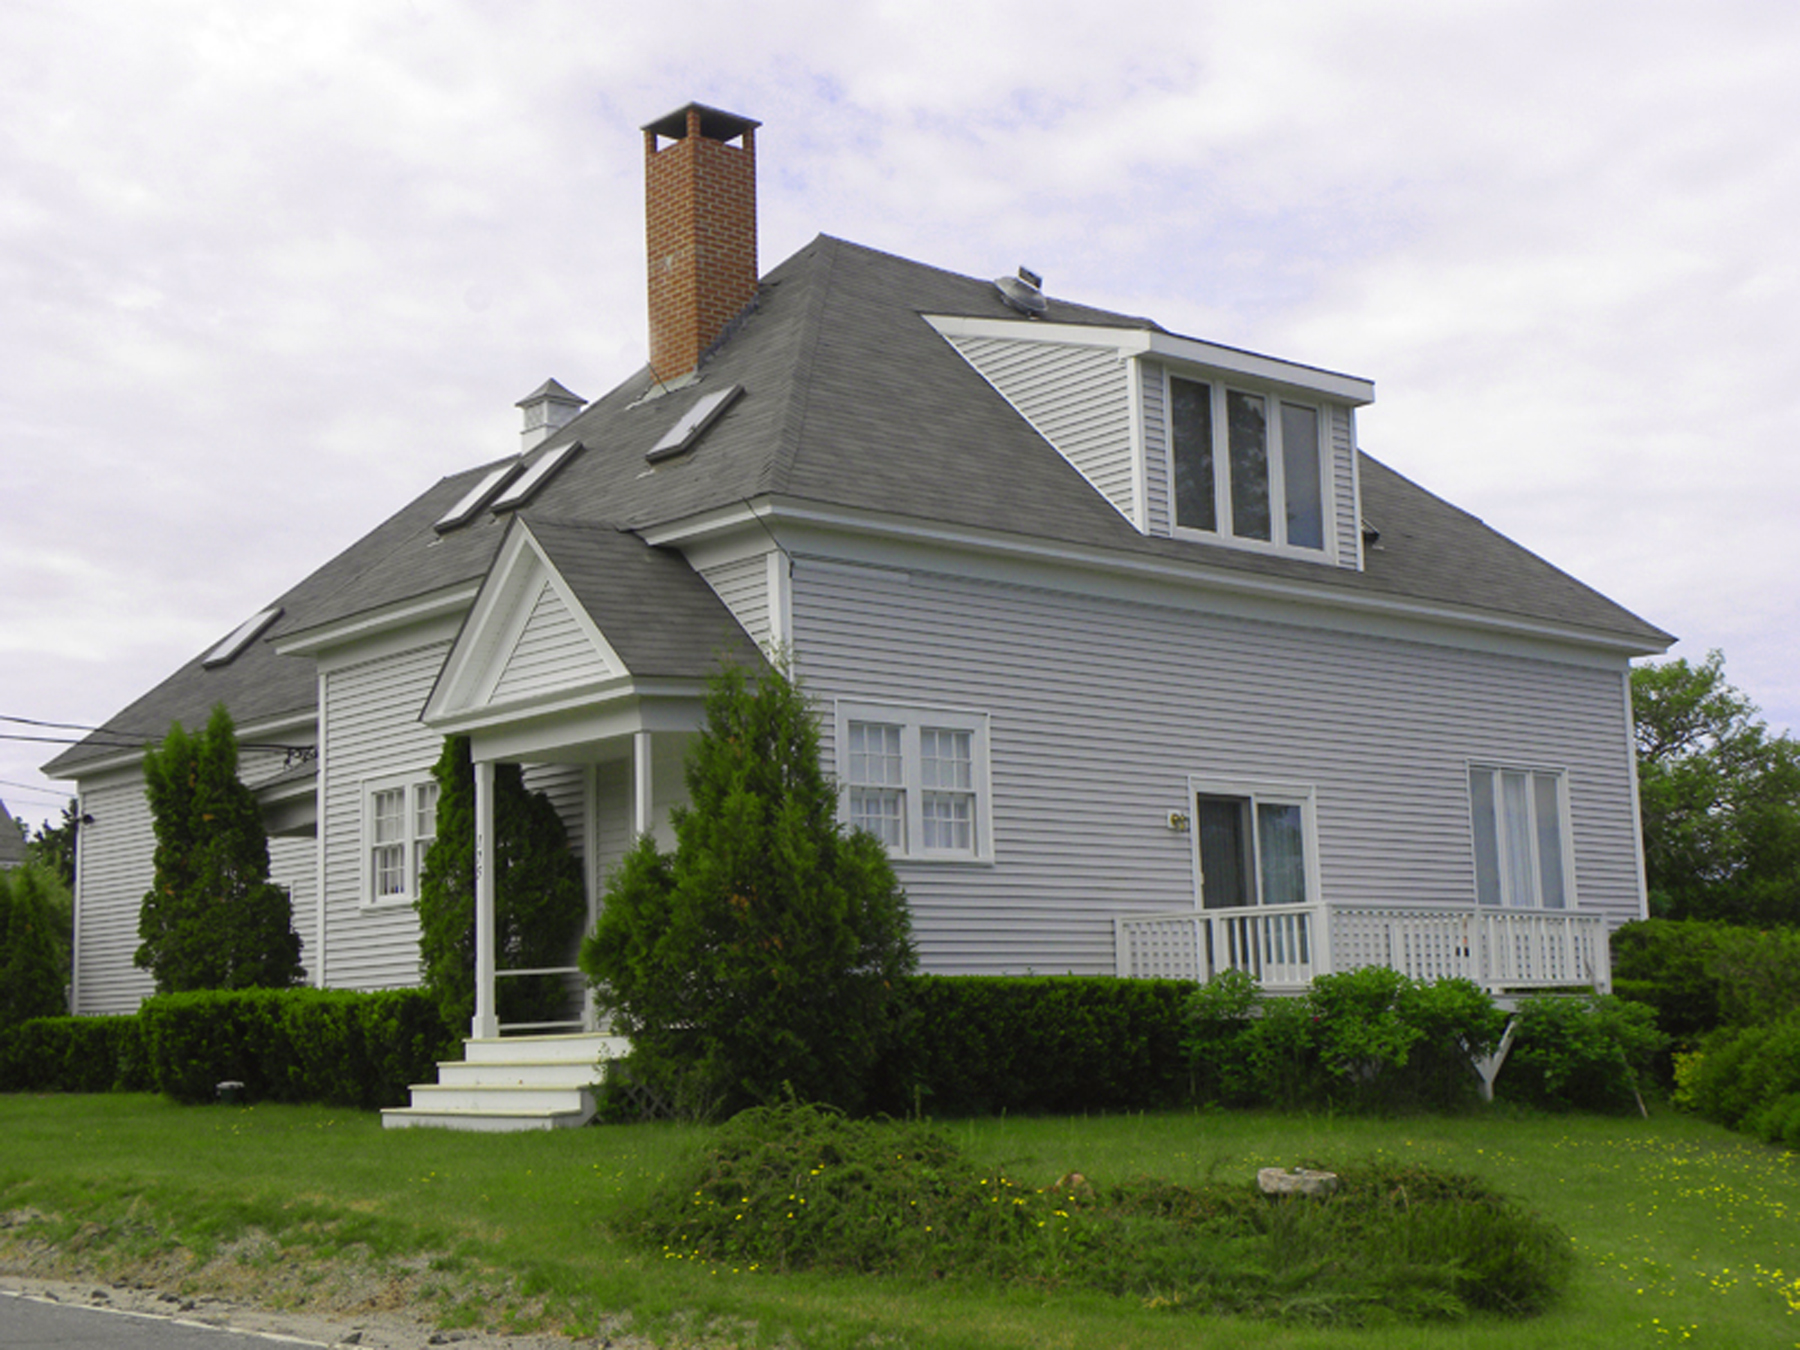 Multi-Family Home for Sale at 175A Harbor Drive Unit #1 Tremont, Maine 04685 United States